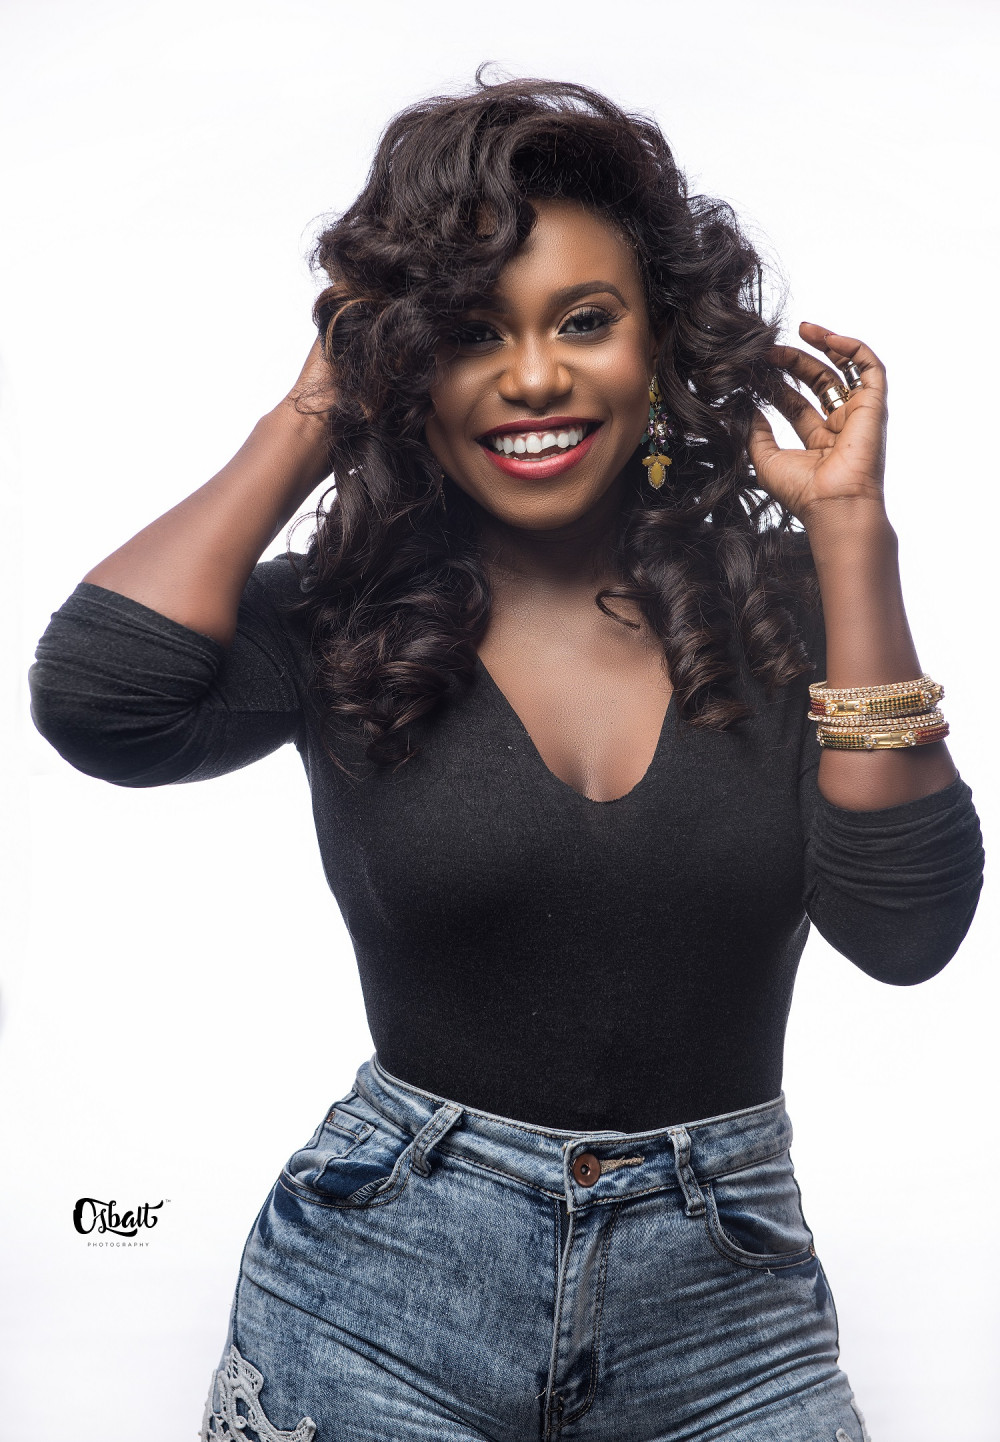 Photogist Black Is Beautiful Niniola on Meet Sultry Simone The Winner Of Best Behind In